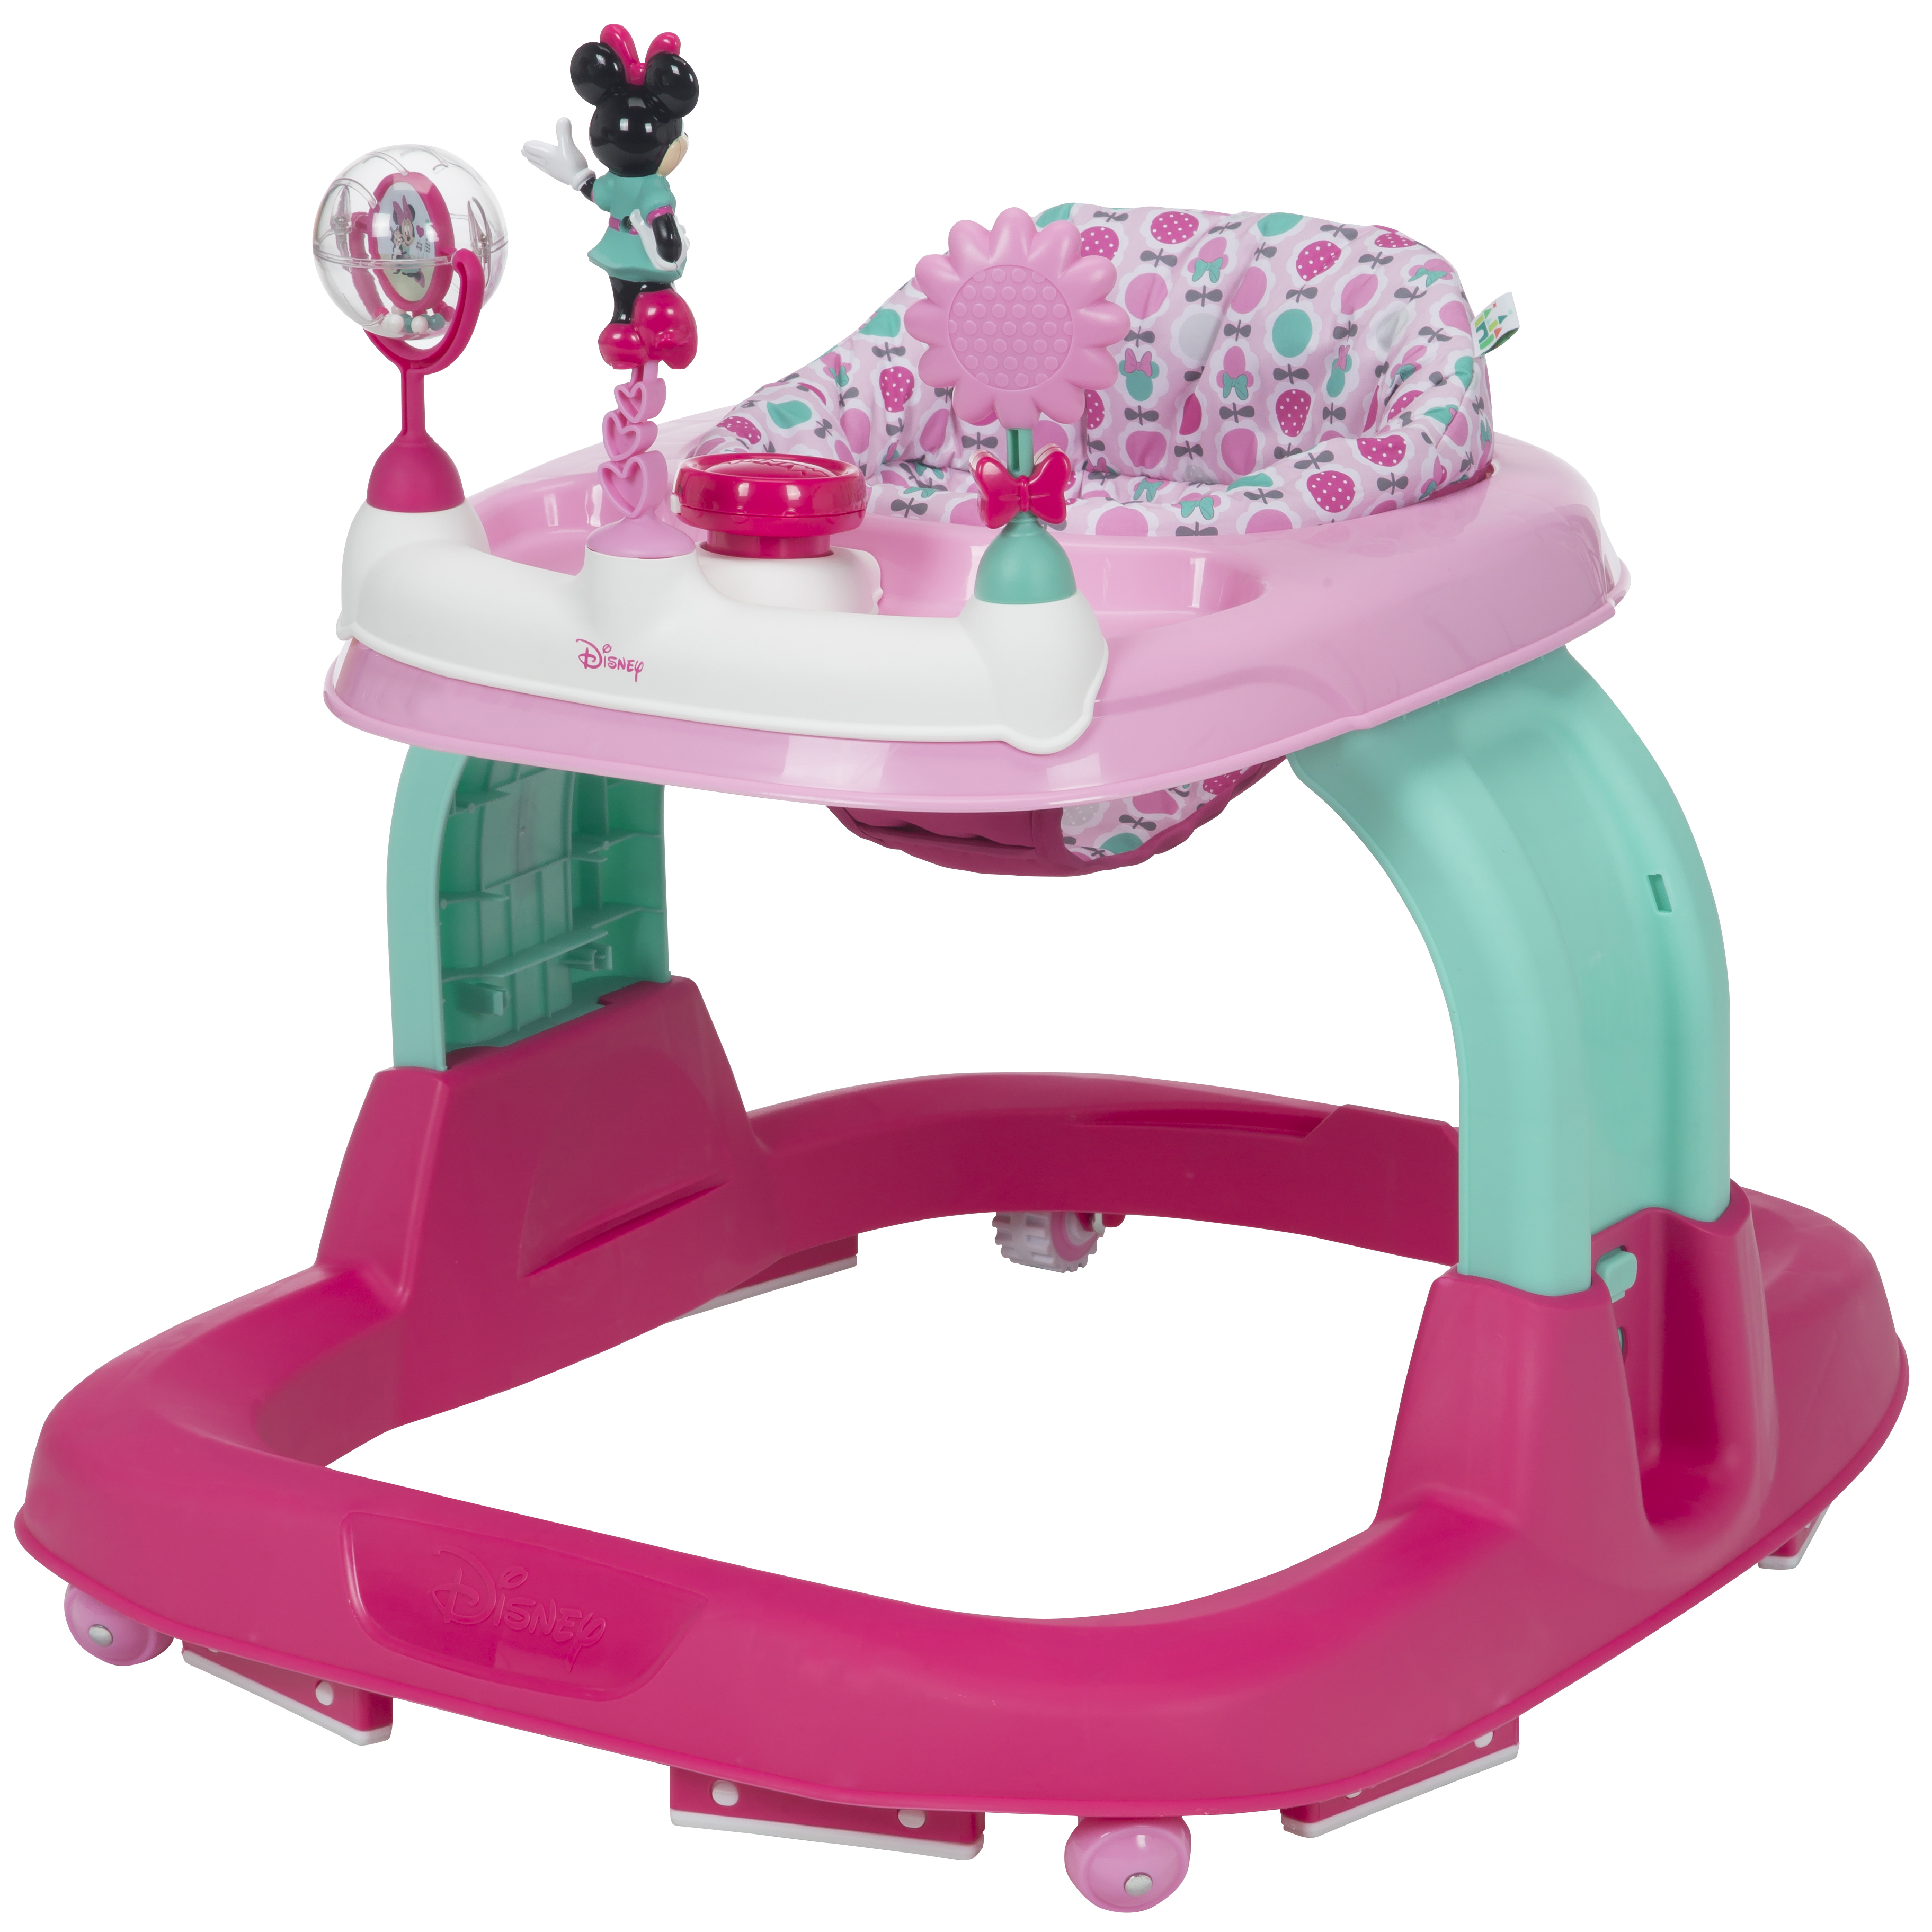 Disney Ready, Set, Walk! Developmental Walker by Disney Baby